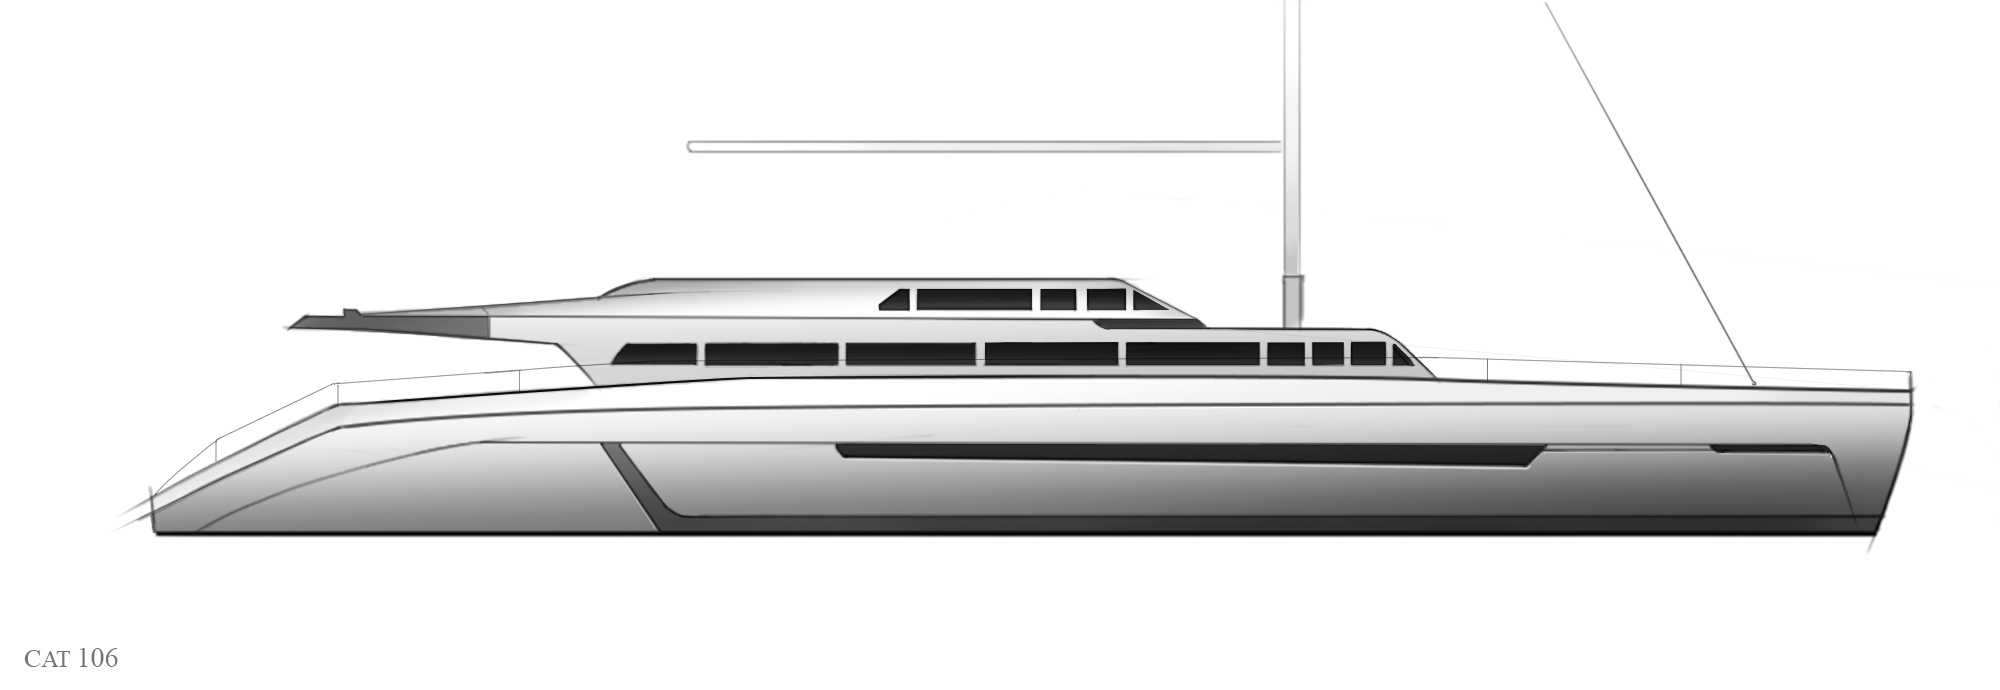 Pedigree Catamaran 106' Motorsailer